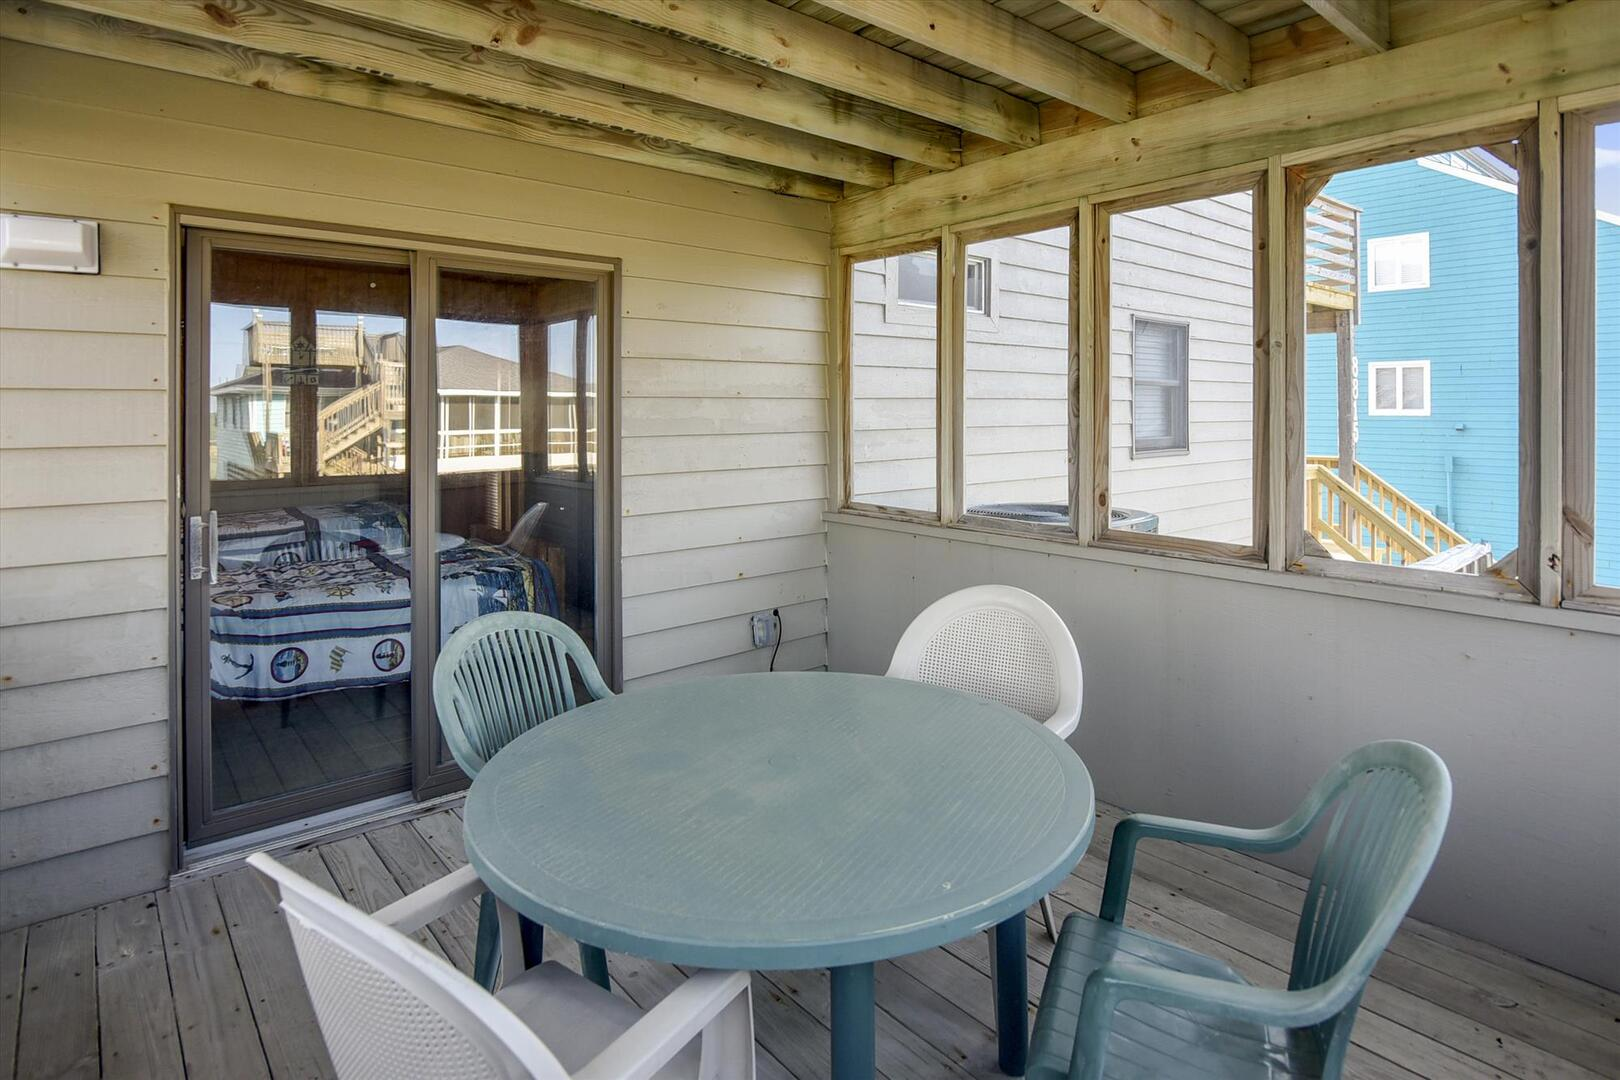 Middle/Entry Level,Screened Porch,